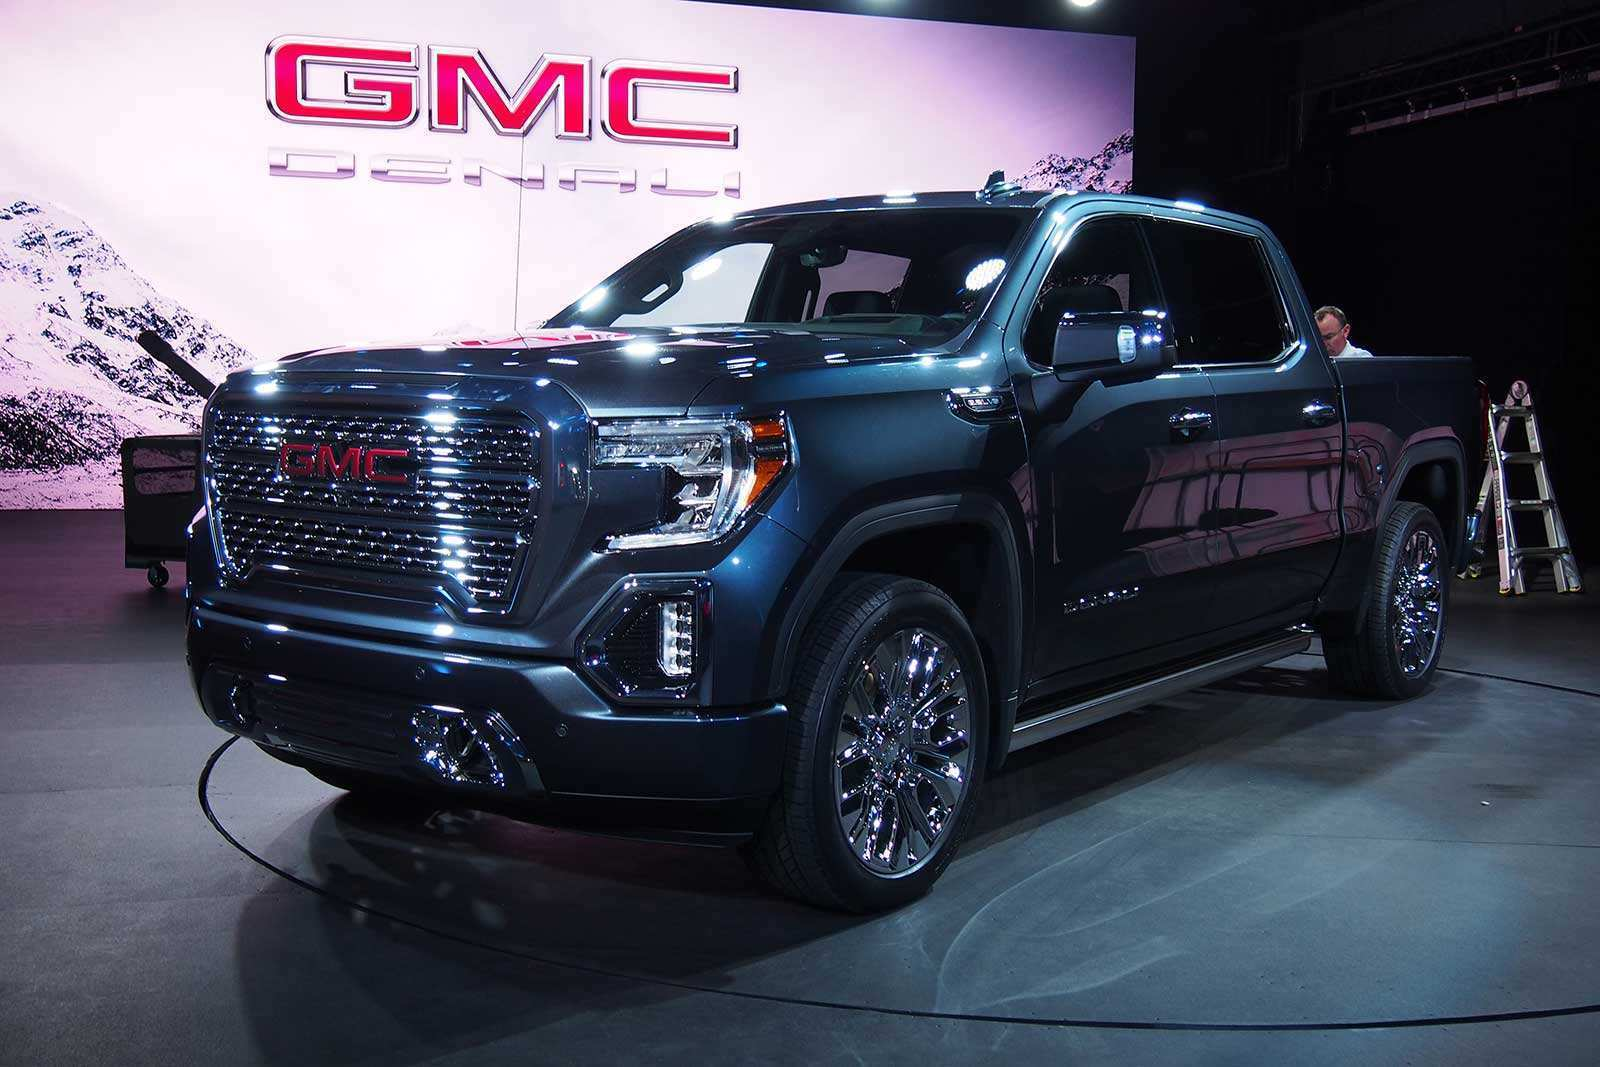 38 Best Review 2019 Gmc 1500 Tailgate Review for 2019 Gmc 1500 Tailgate